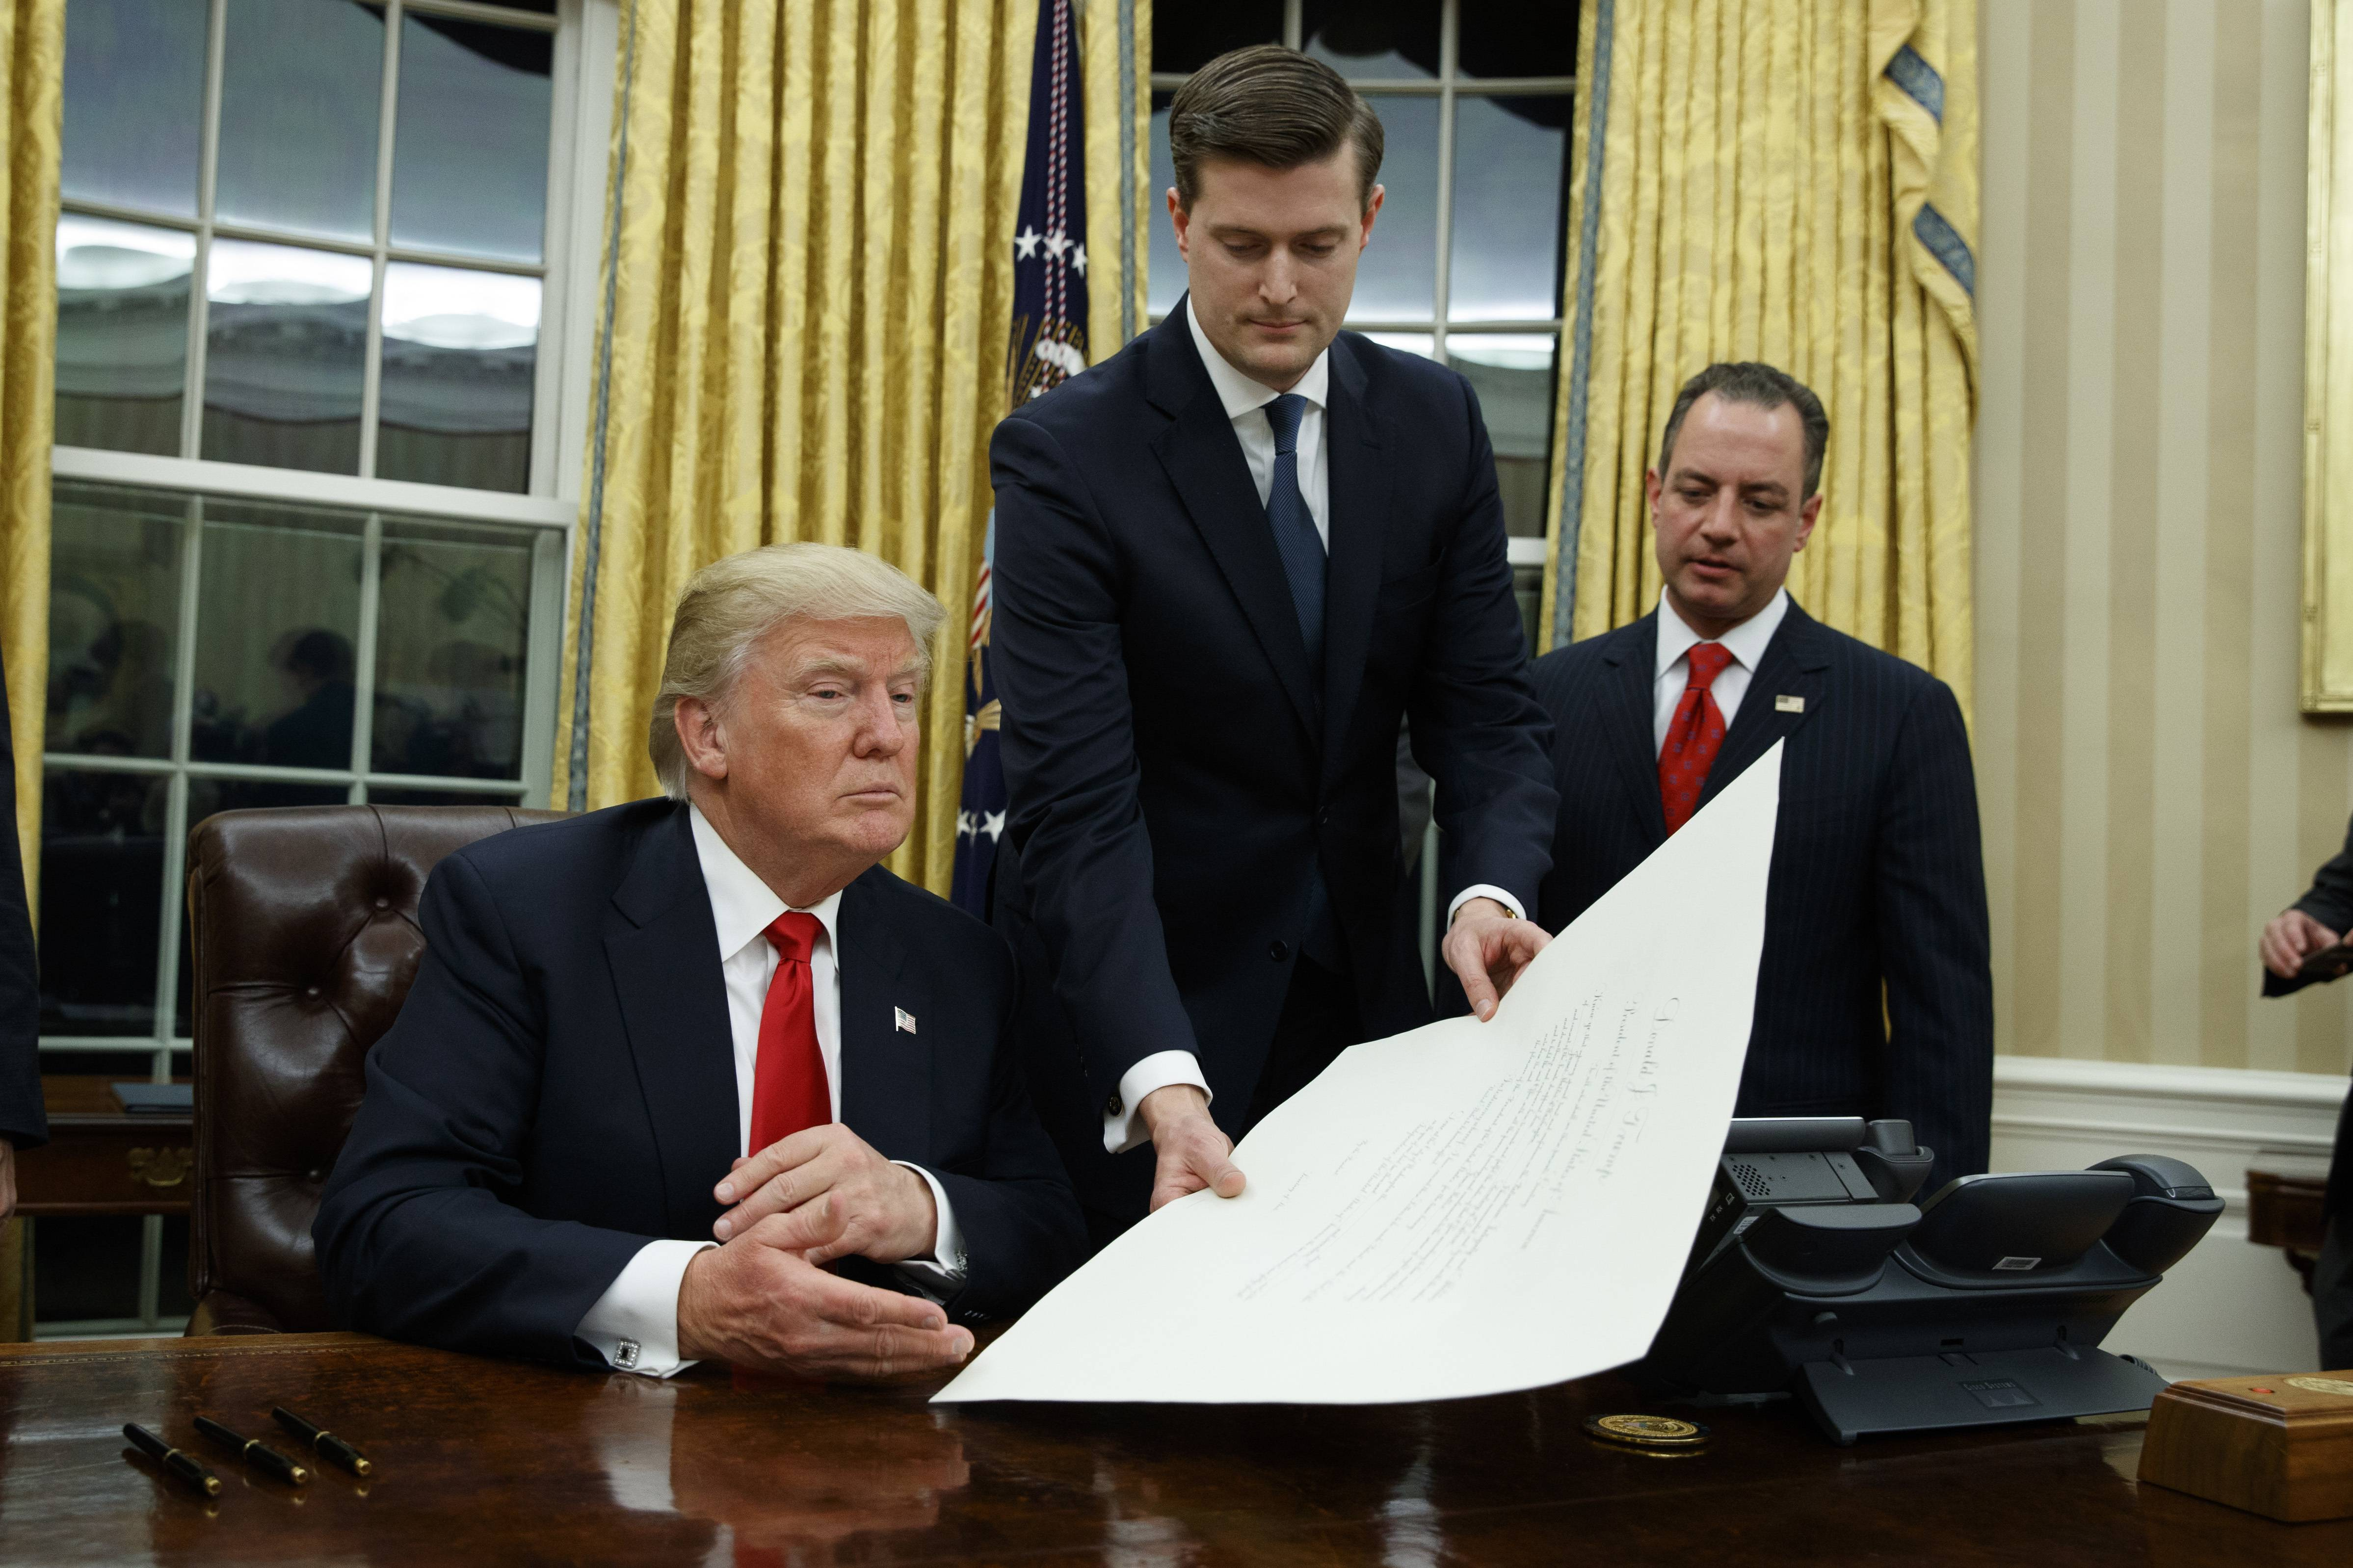 White House Chief of Staff Reince Priebus, right, watches as White House Staff Secretary Rob Porter, center, hands President Donald Trump a confirmation order for James Mattis as defense secretary Friday in the Oval Office of the White House in Washington.